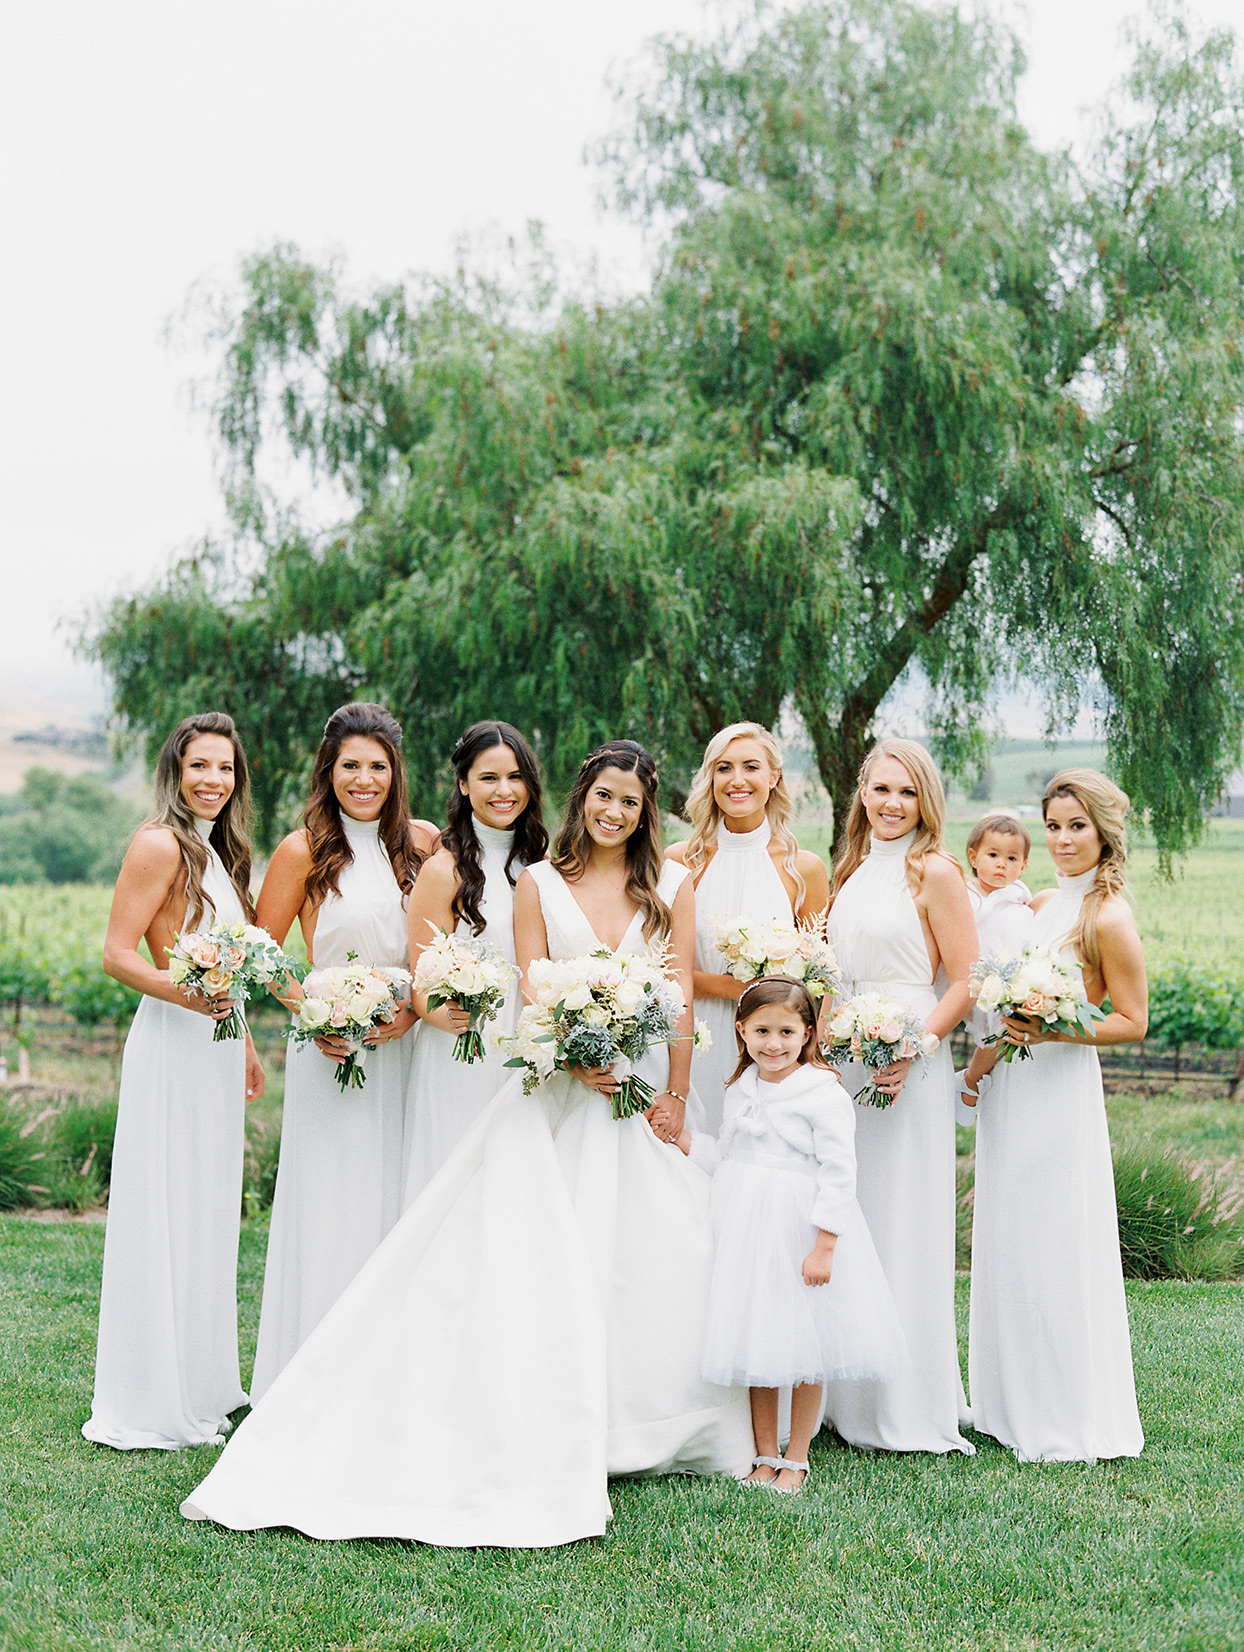 mika steve bride and bridesmaids in white